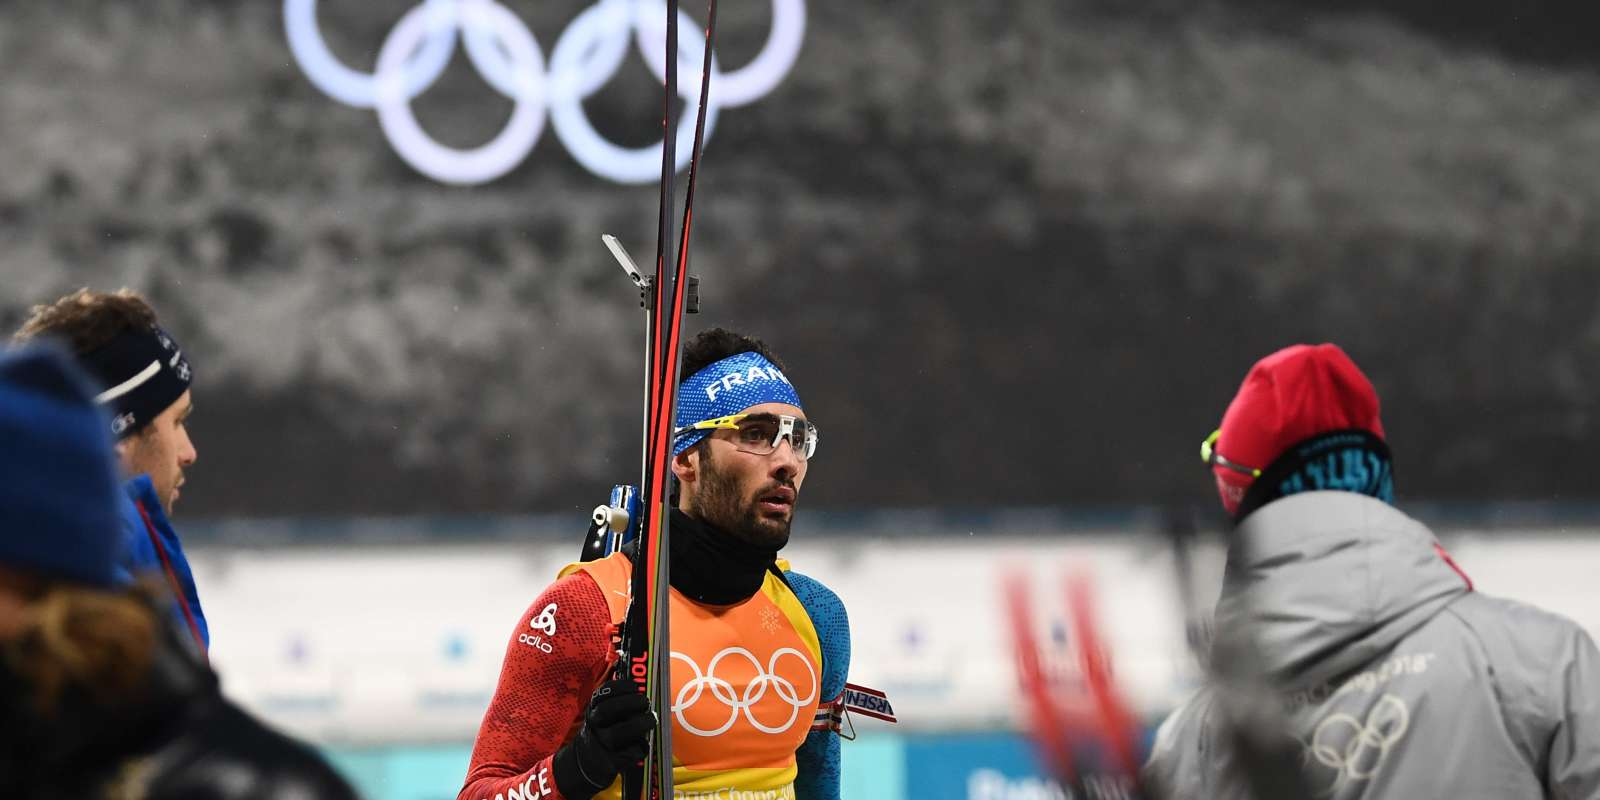 France's Martin Fourcade finishes his relay in the men's 4x7,5km biathlon relay event during the Pyeongchang 2018 Winter Olympic Games on February 23, 2018, in Pyeongchang. / AFP / FRANCK FIFE